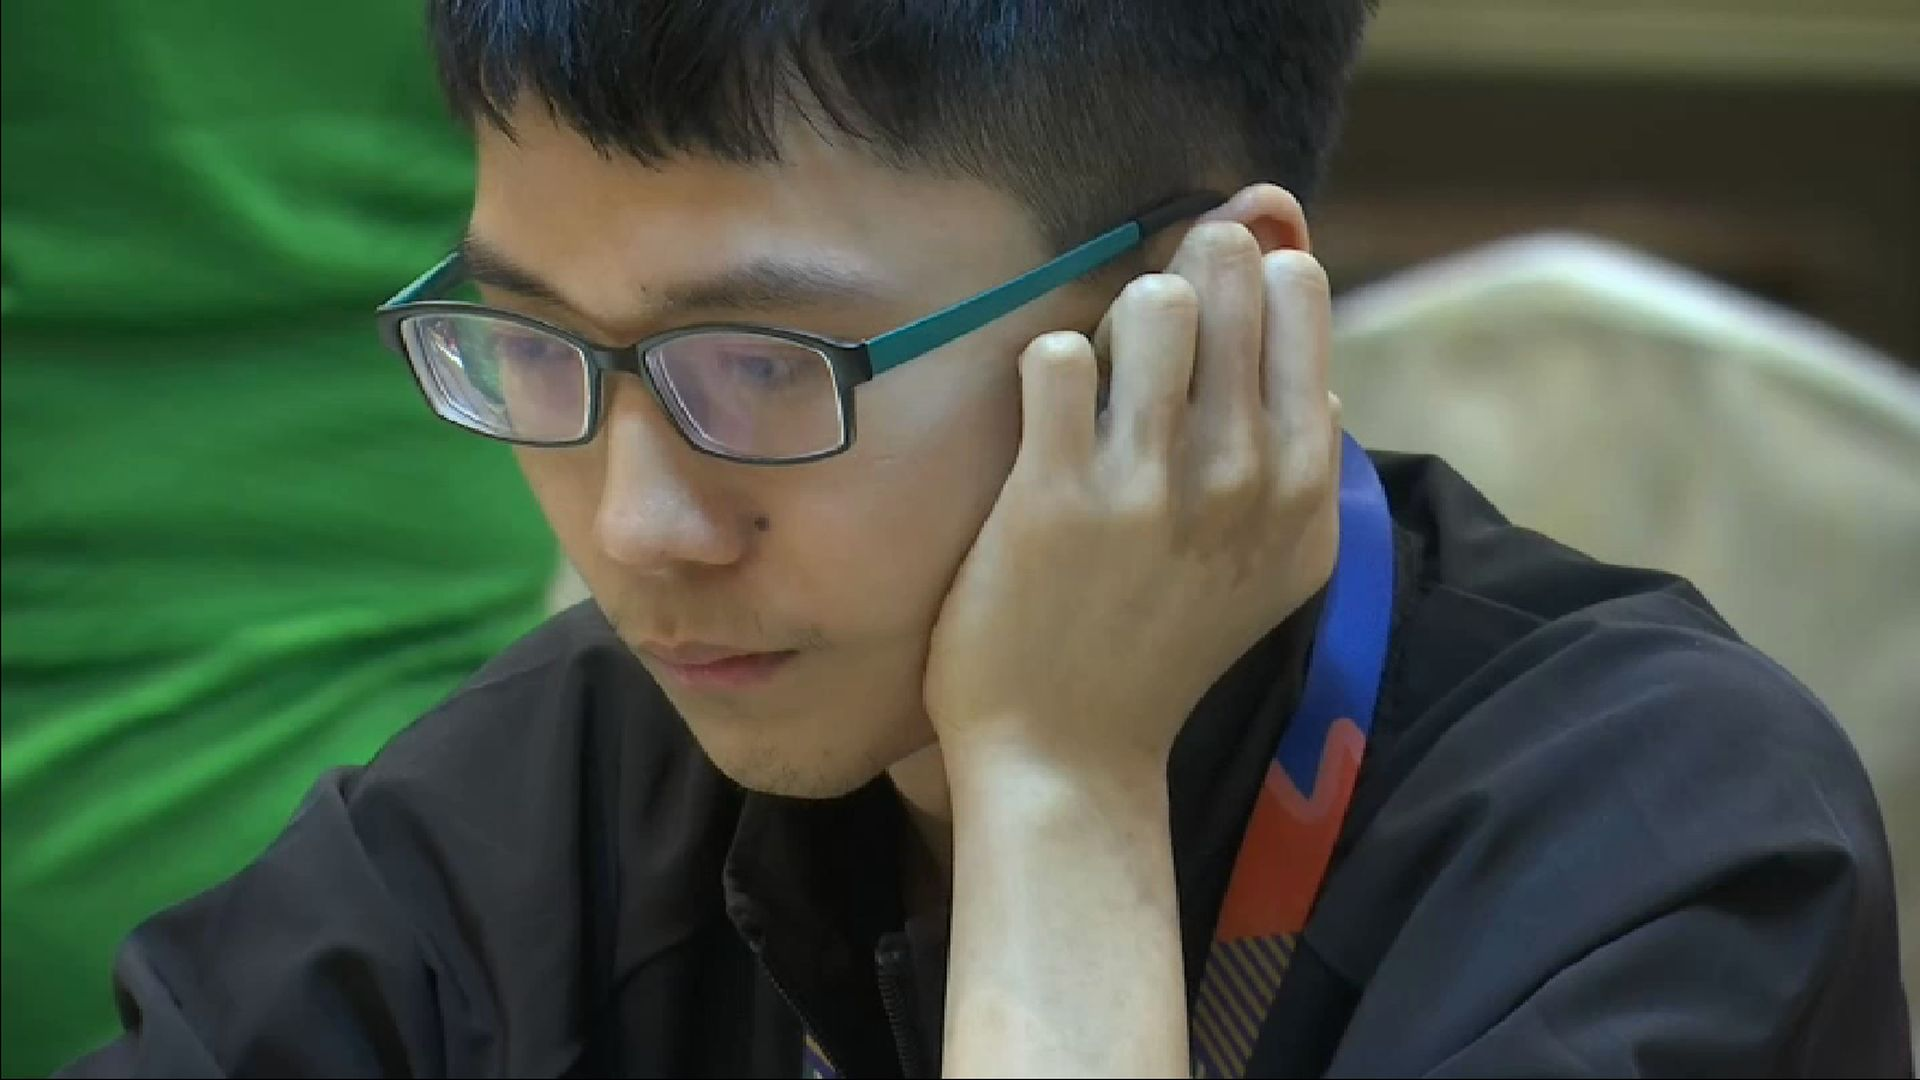 Li Tian in deep concentration during the competition yesterday, 3 December.